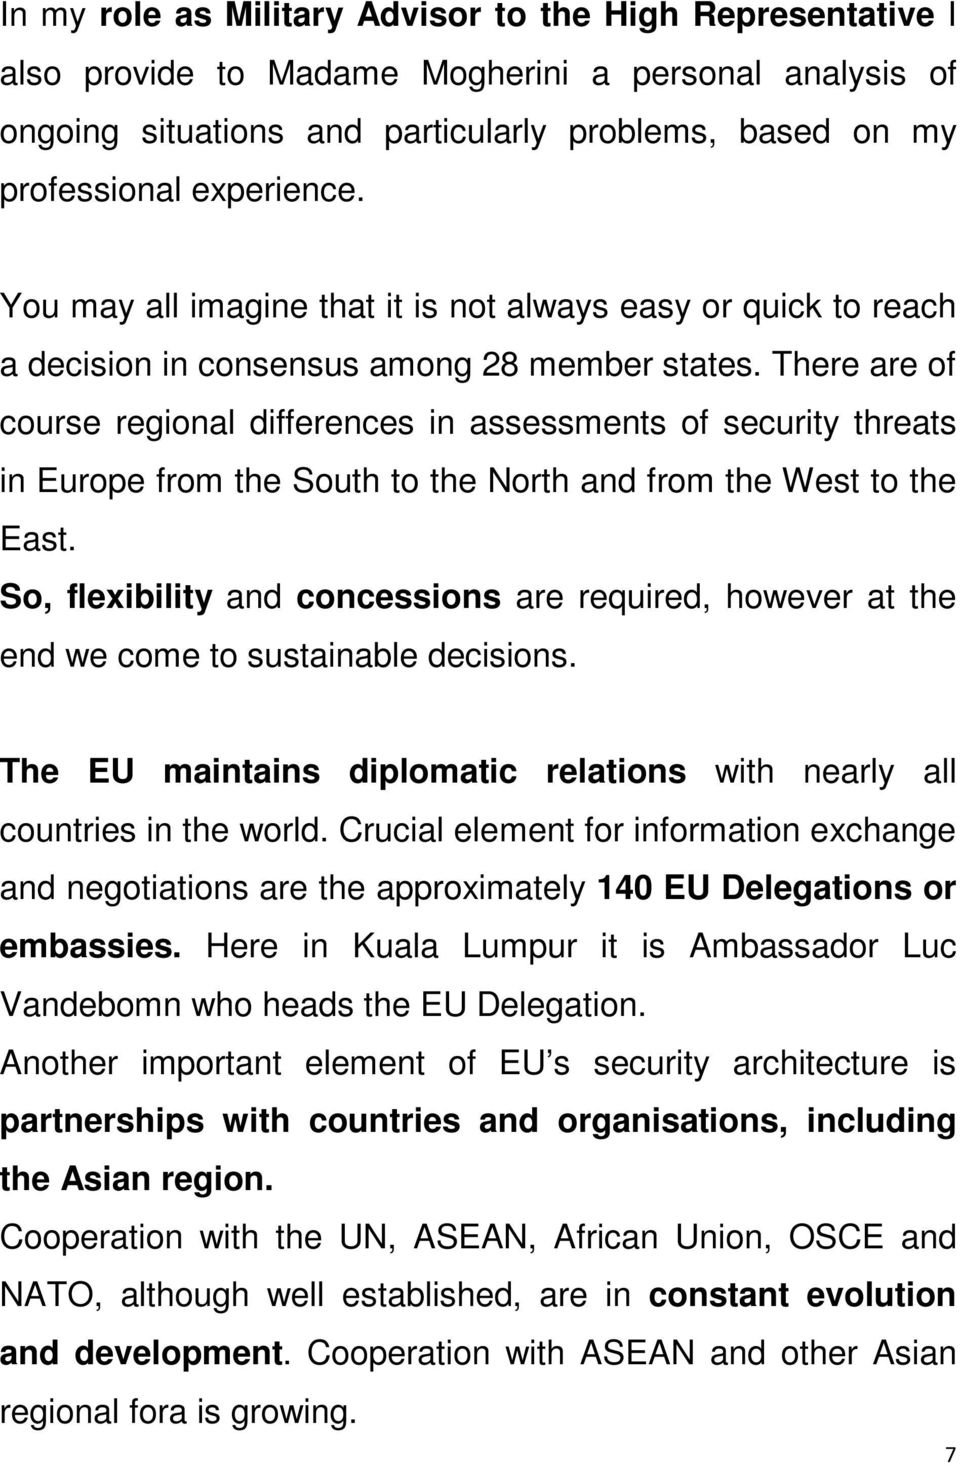 There are of course regional differences in assessments of security threats in Europe from the South to the North and from the West to the East.